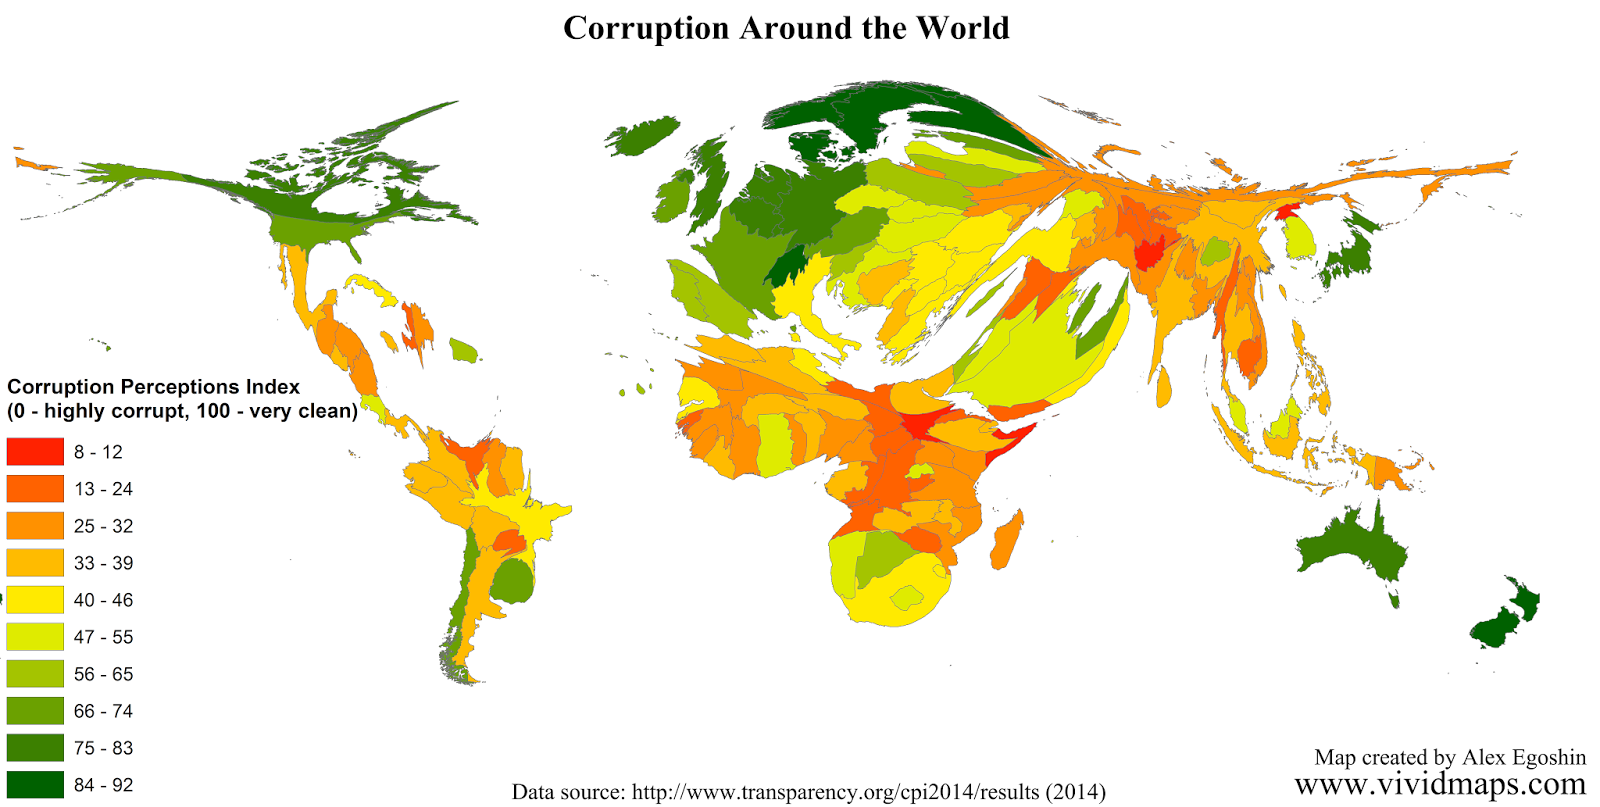 Corruption Perceptions Index (Cartogram)